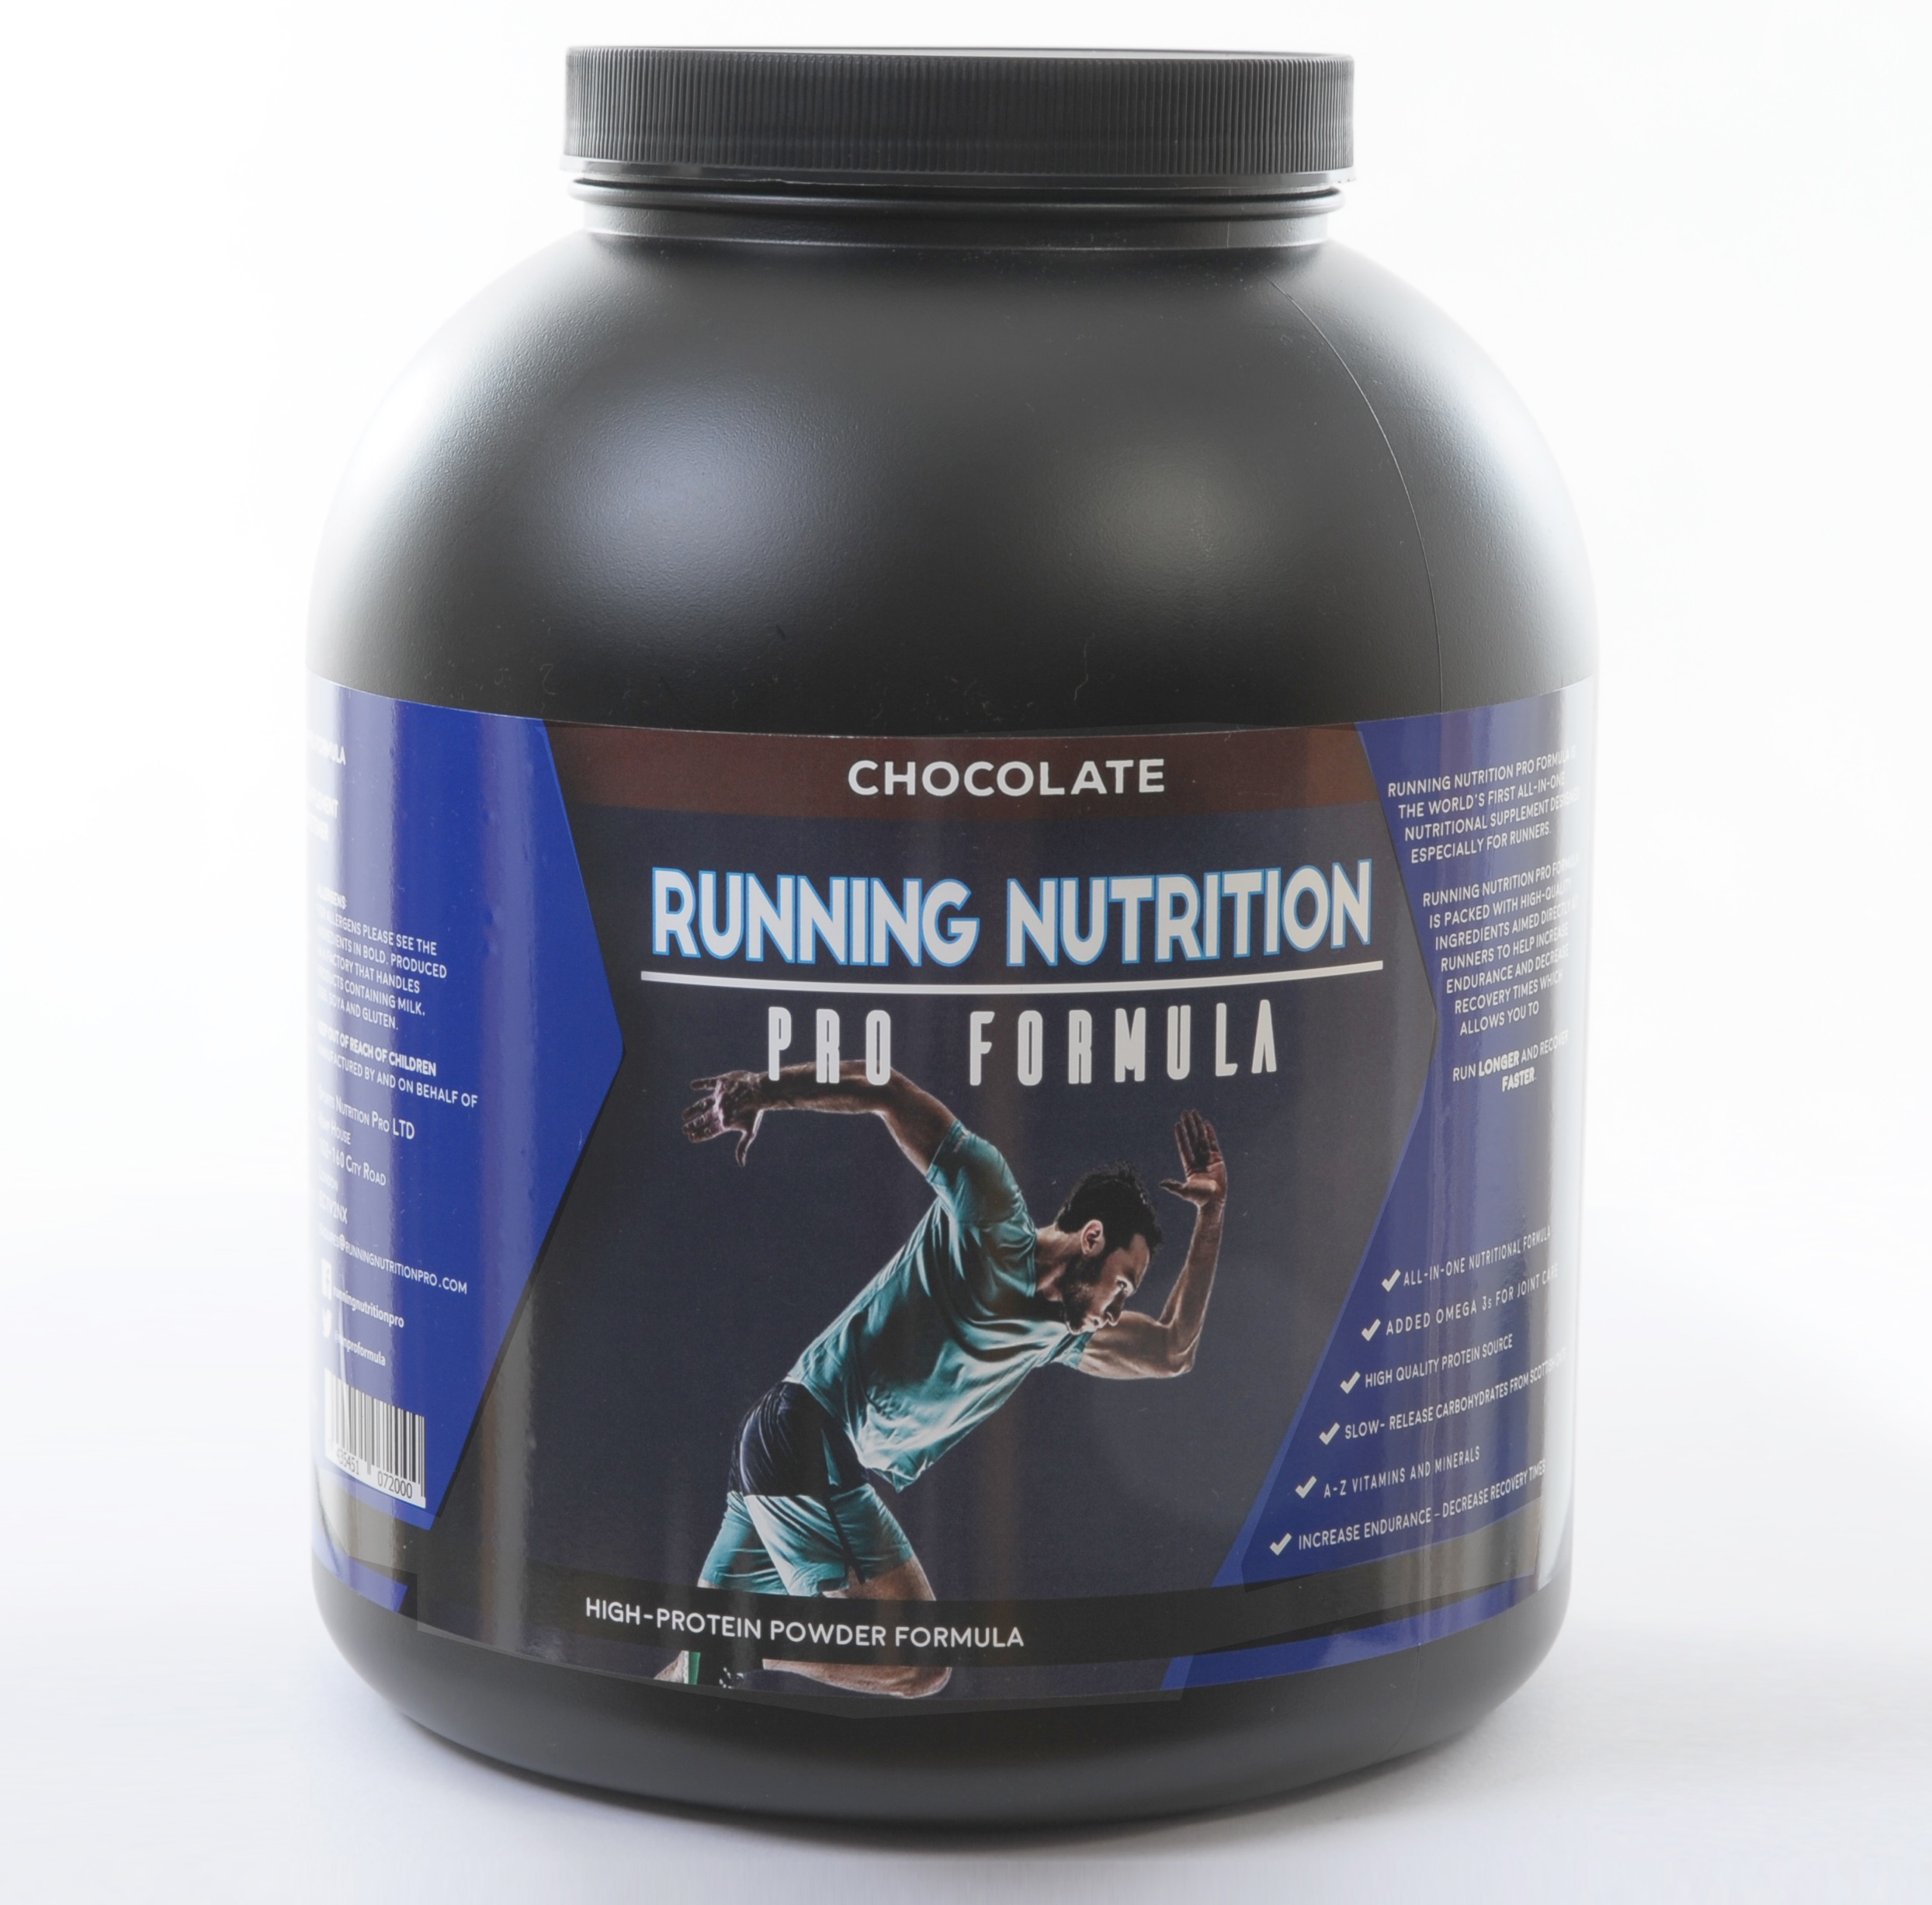 Running Nutrition Pro Formula protein powder review | Cyclist